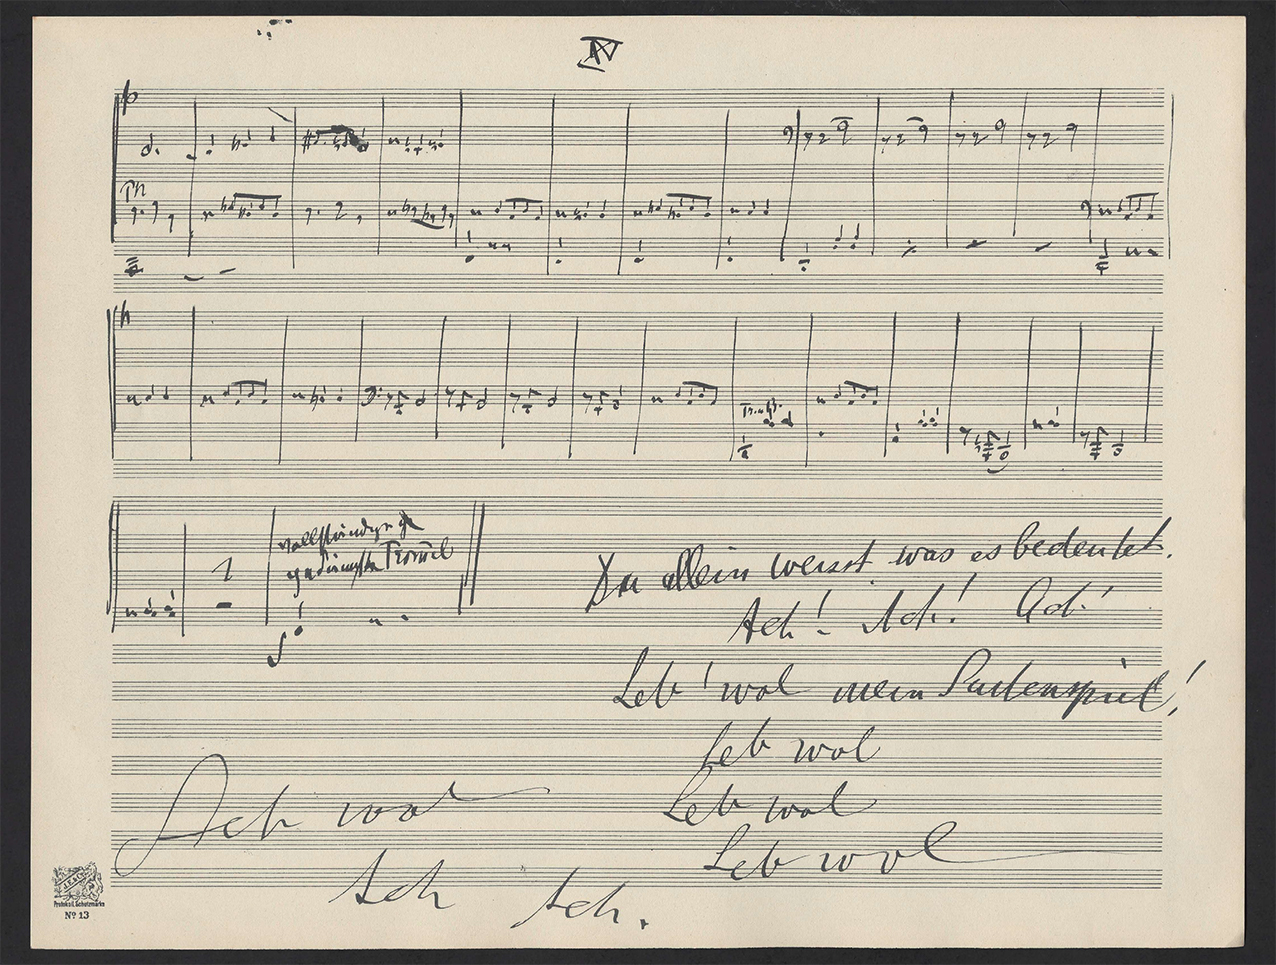 Handwritten music manuscript with German writing on it.